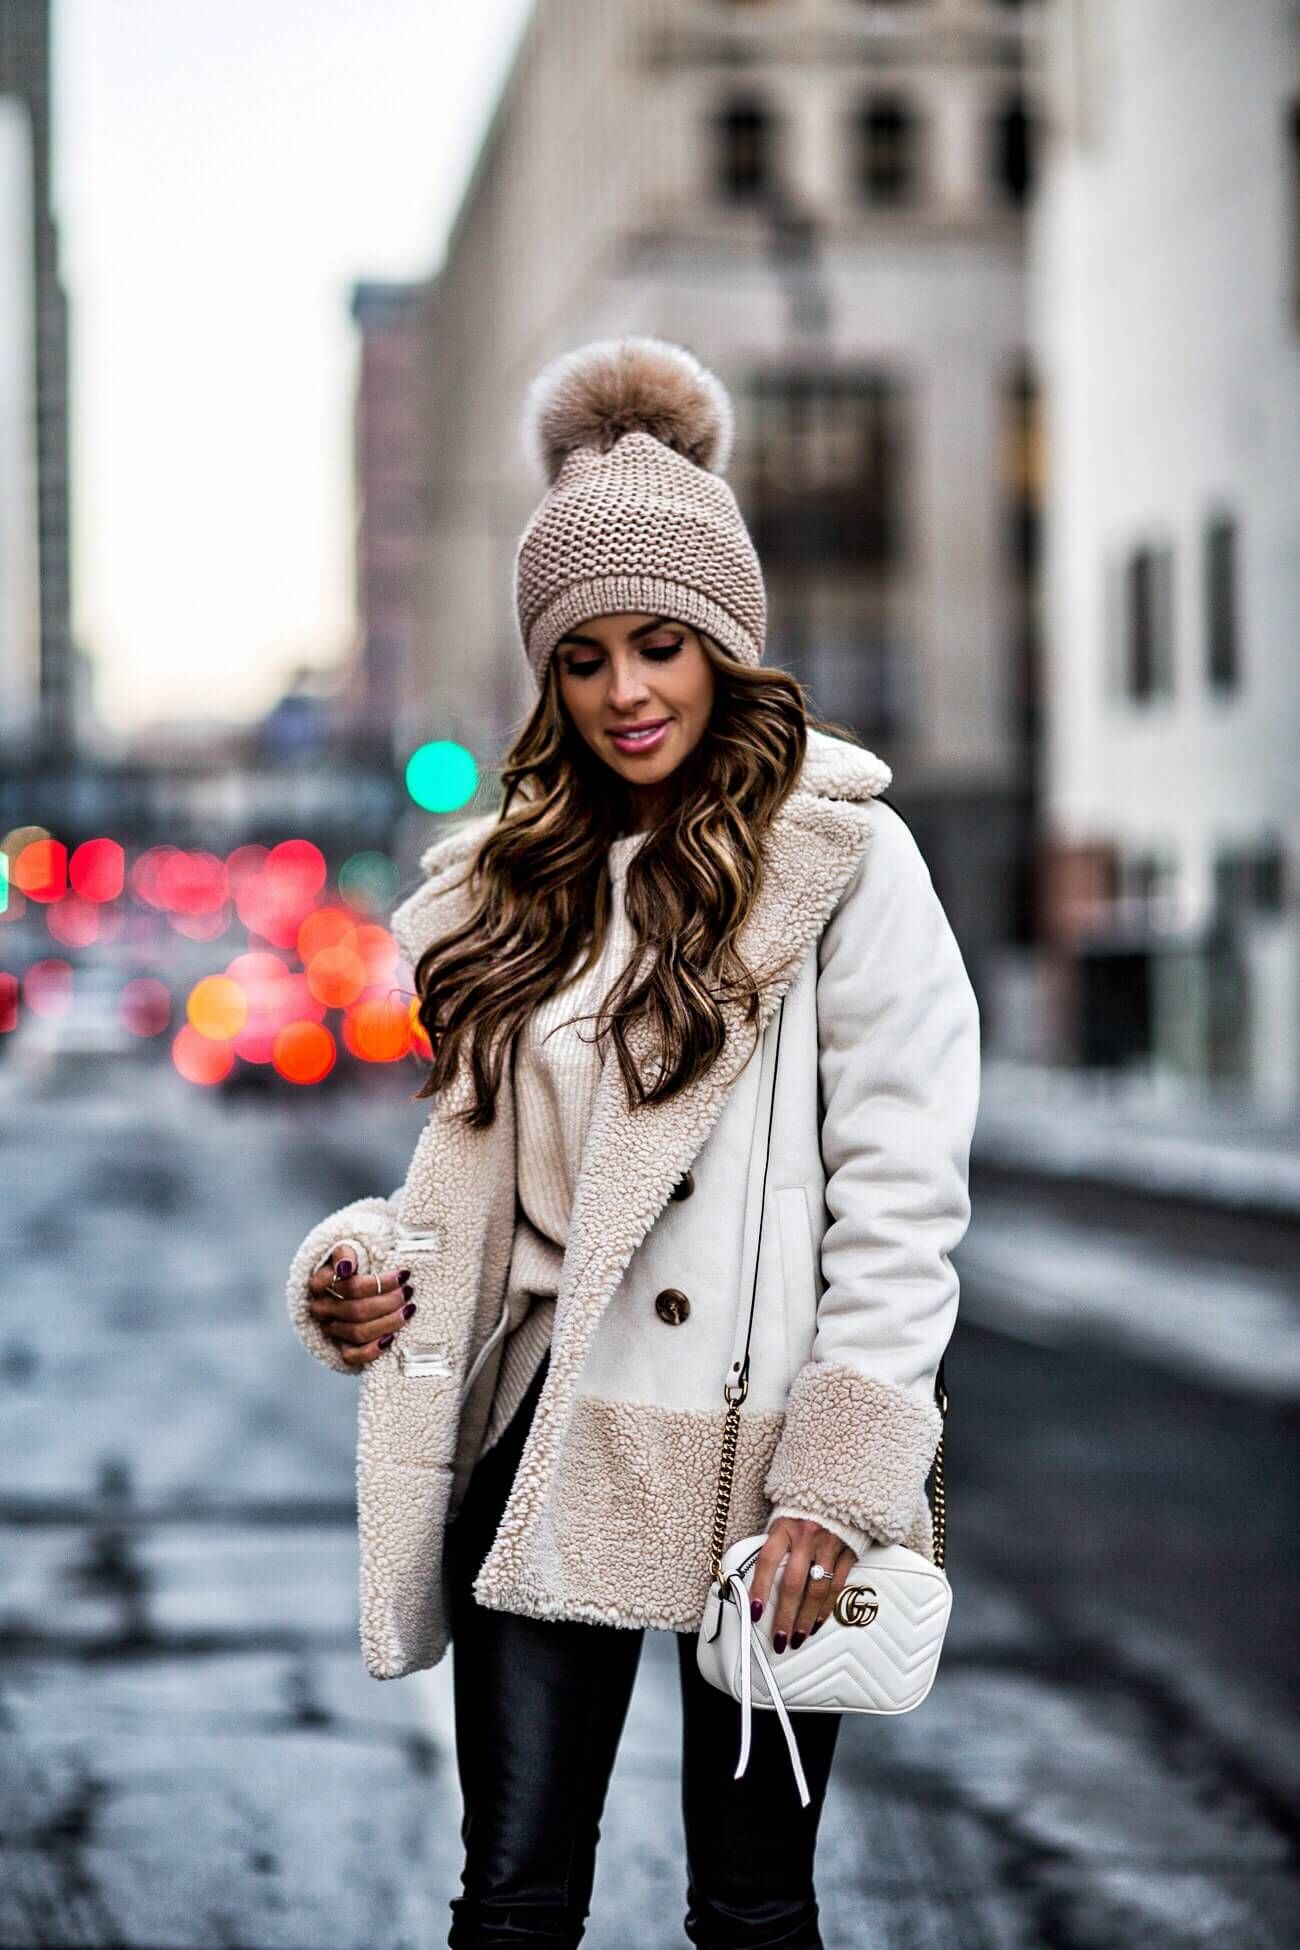 b2d8f9dd368e79 fashion blogger mia mia mine wearing a camel sweater from forever 21 and a  pom pom beanie from bloomingdale's